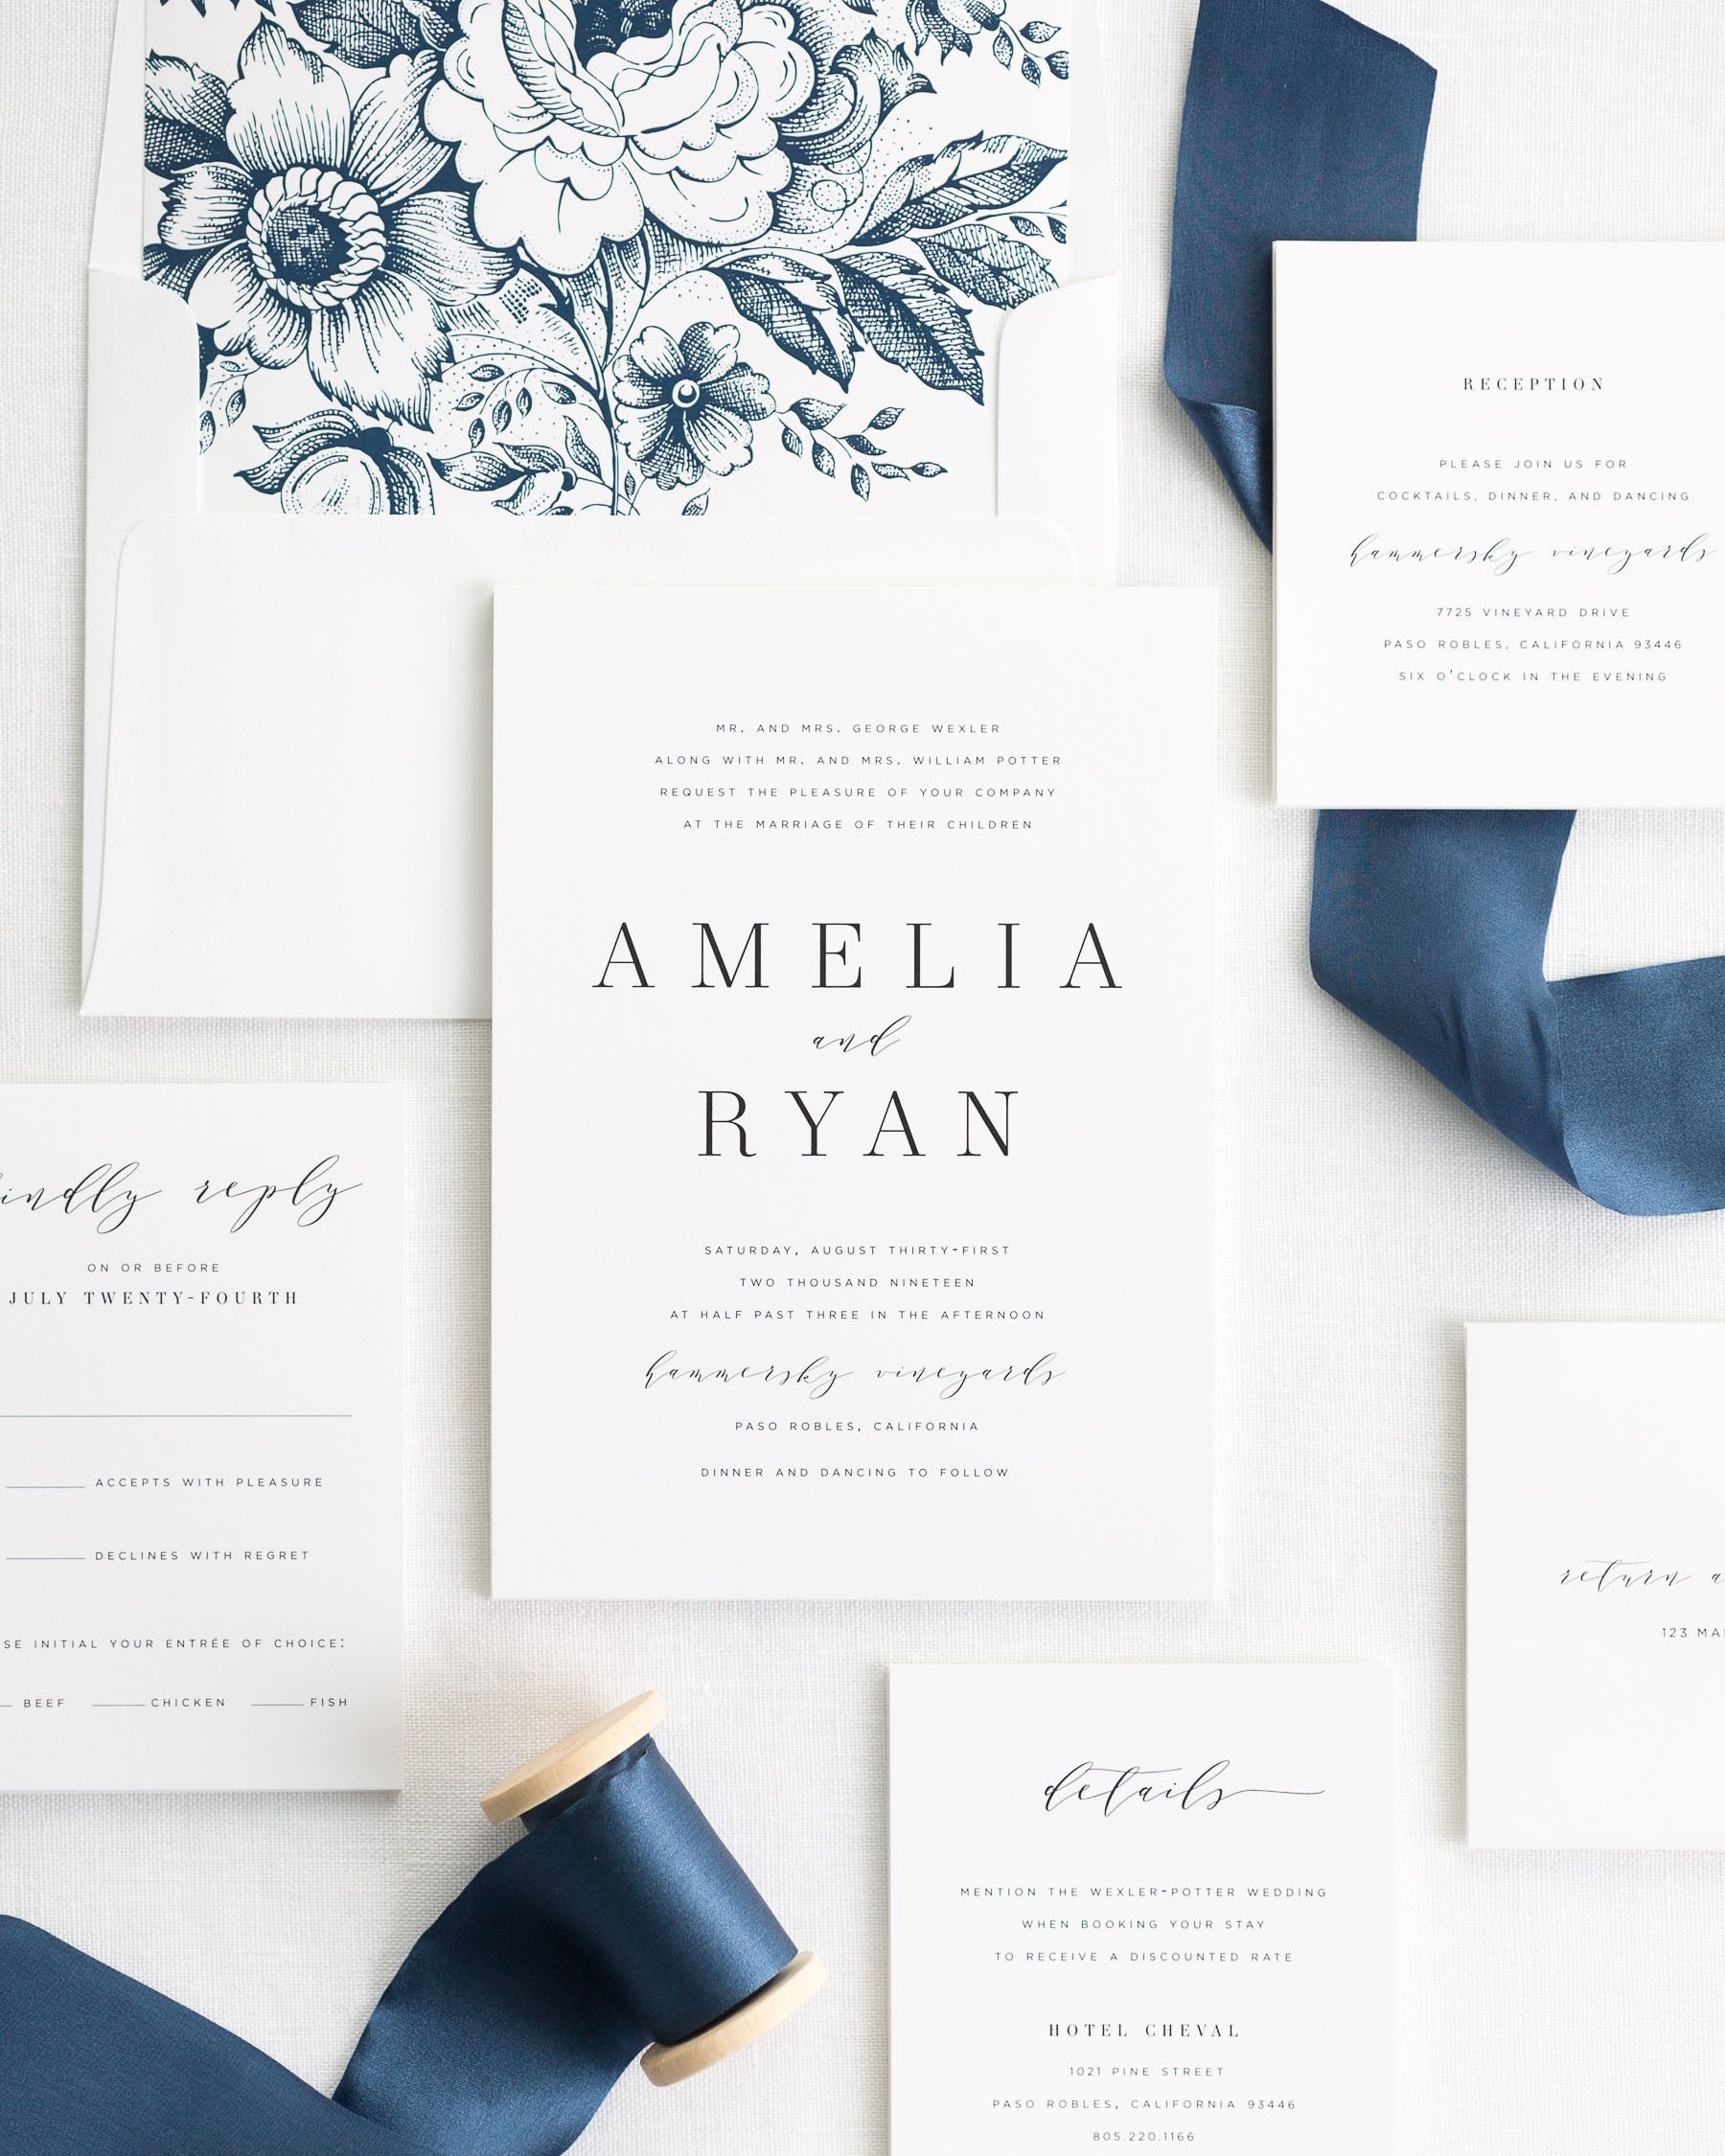 Top 5 Wedding Invitation Mistakes and How to Avoid Them | Stationary ...